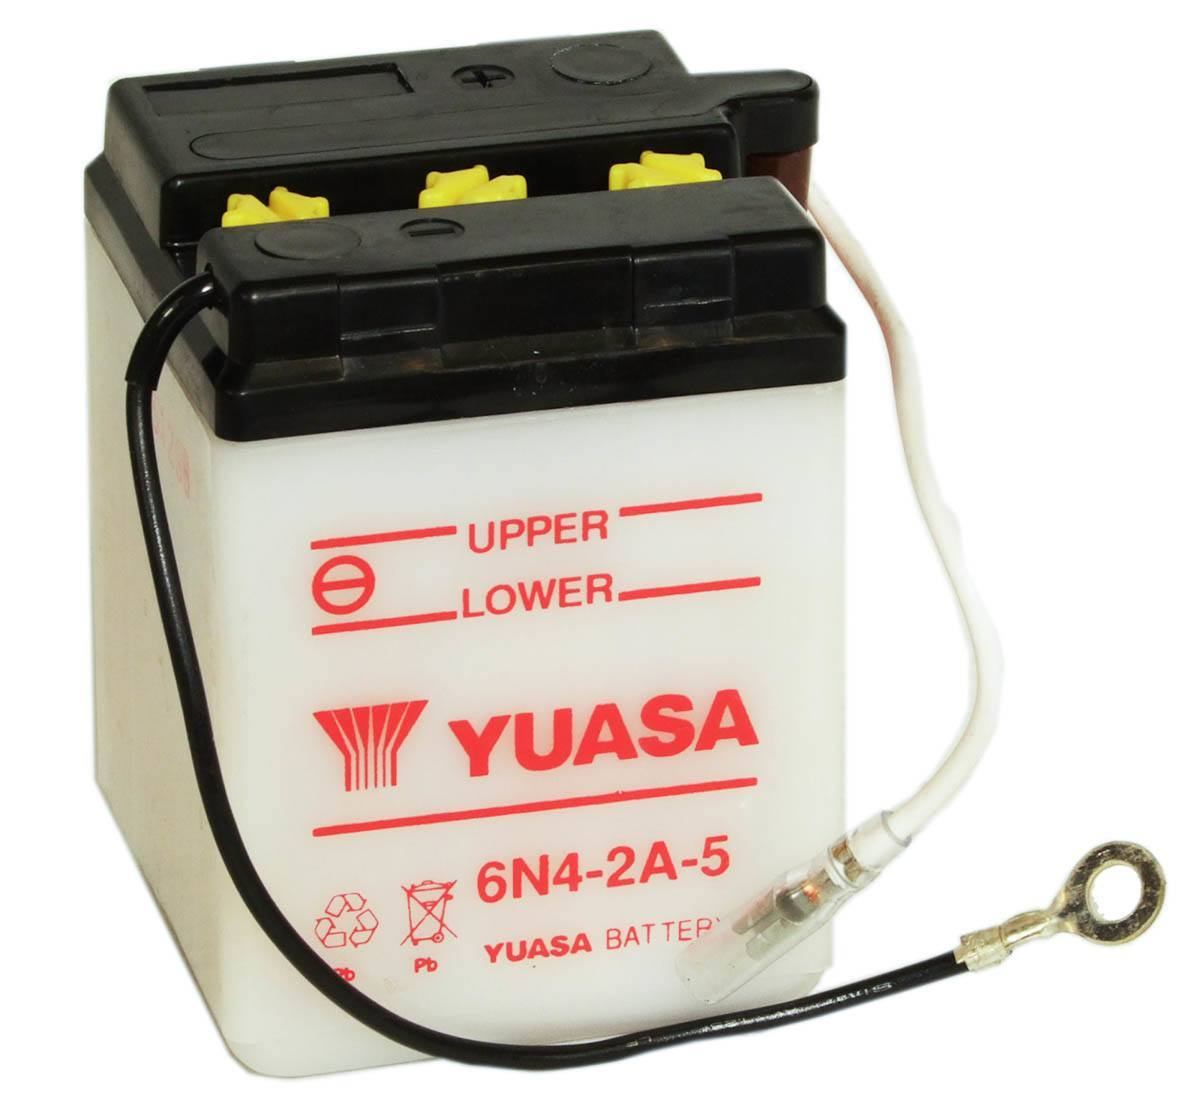 6N4-2A-5 battery from Batteryworld.ie